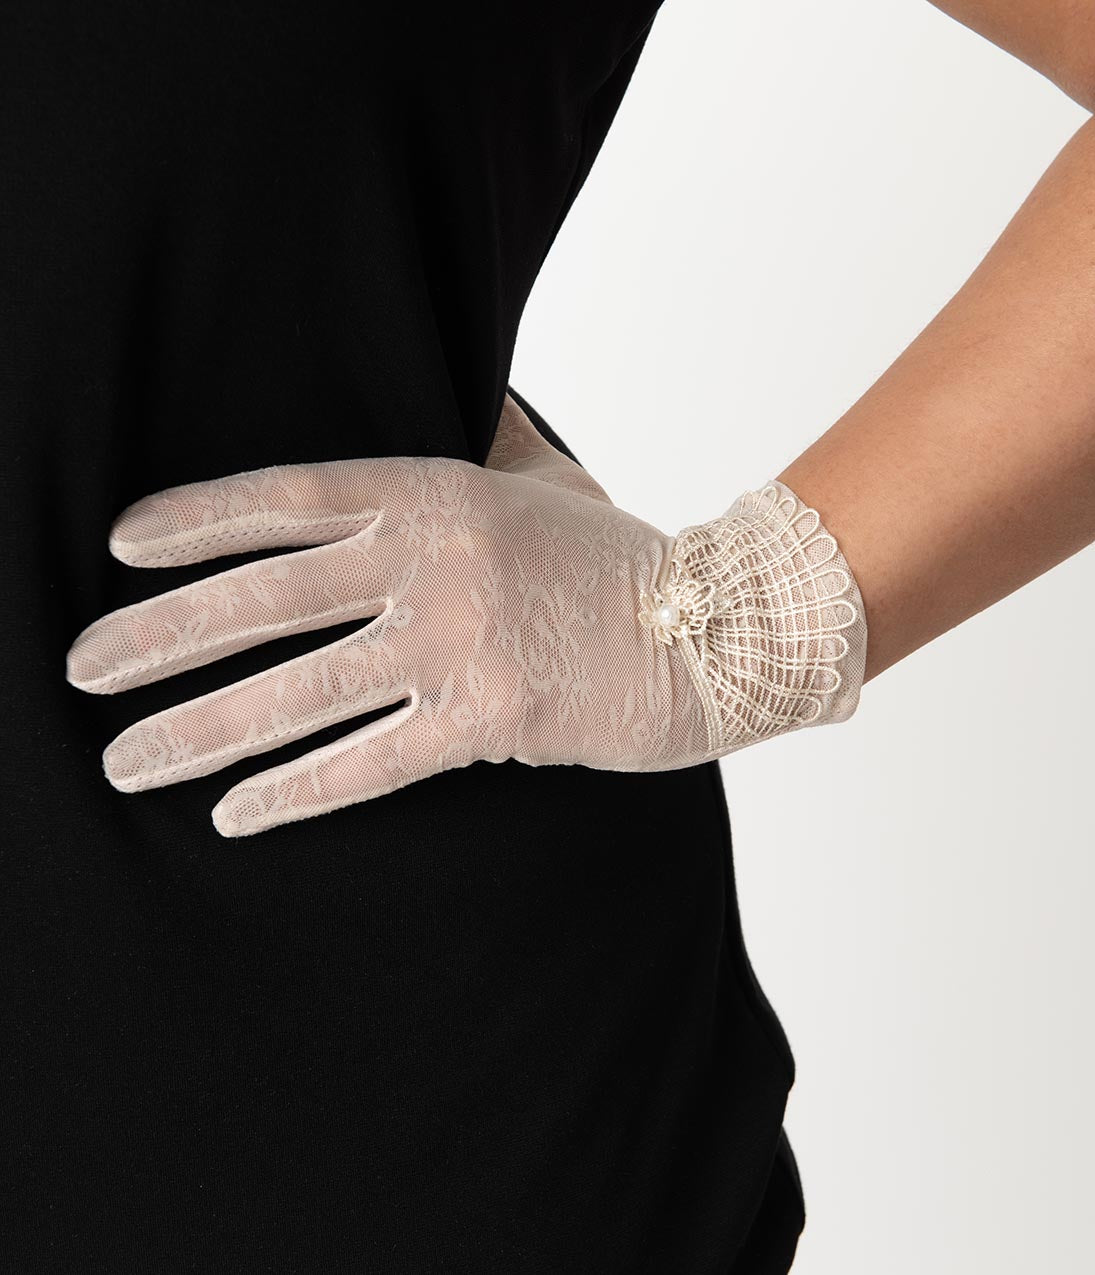 Victorian Gloves | Victorian Accessories Unique Vintage Light Pink Deco Floral Mesh Wrist Gloves $22.00 AT vintagedancer.com